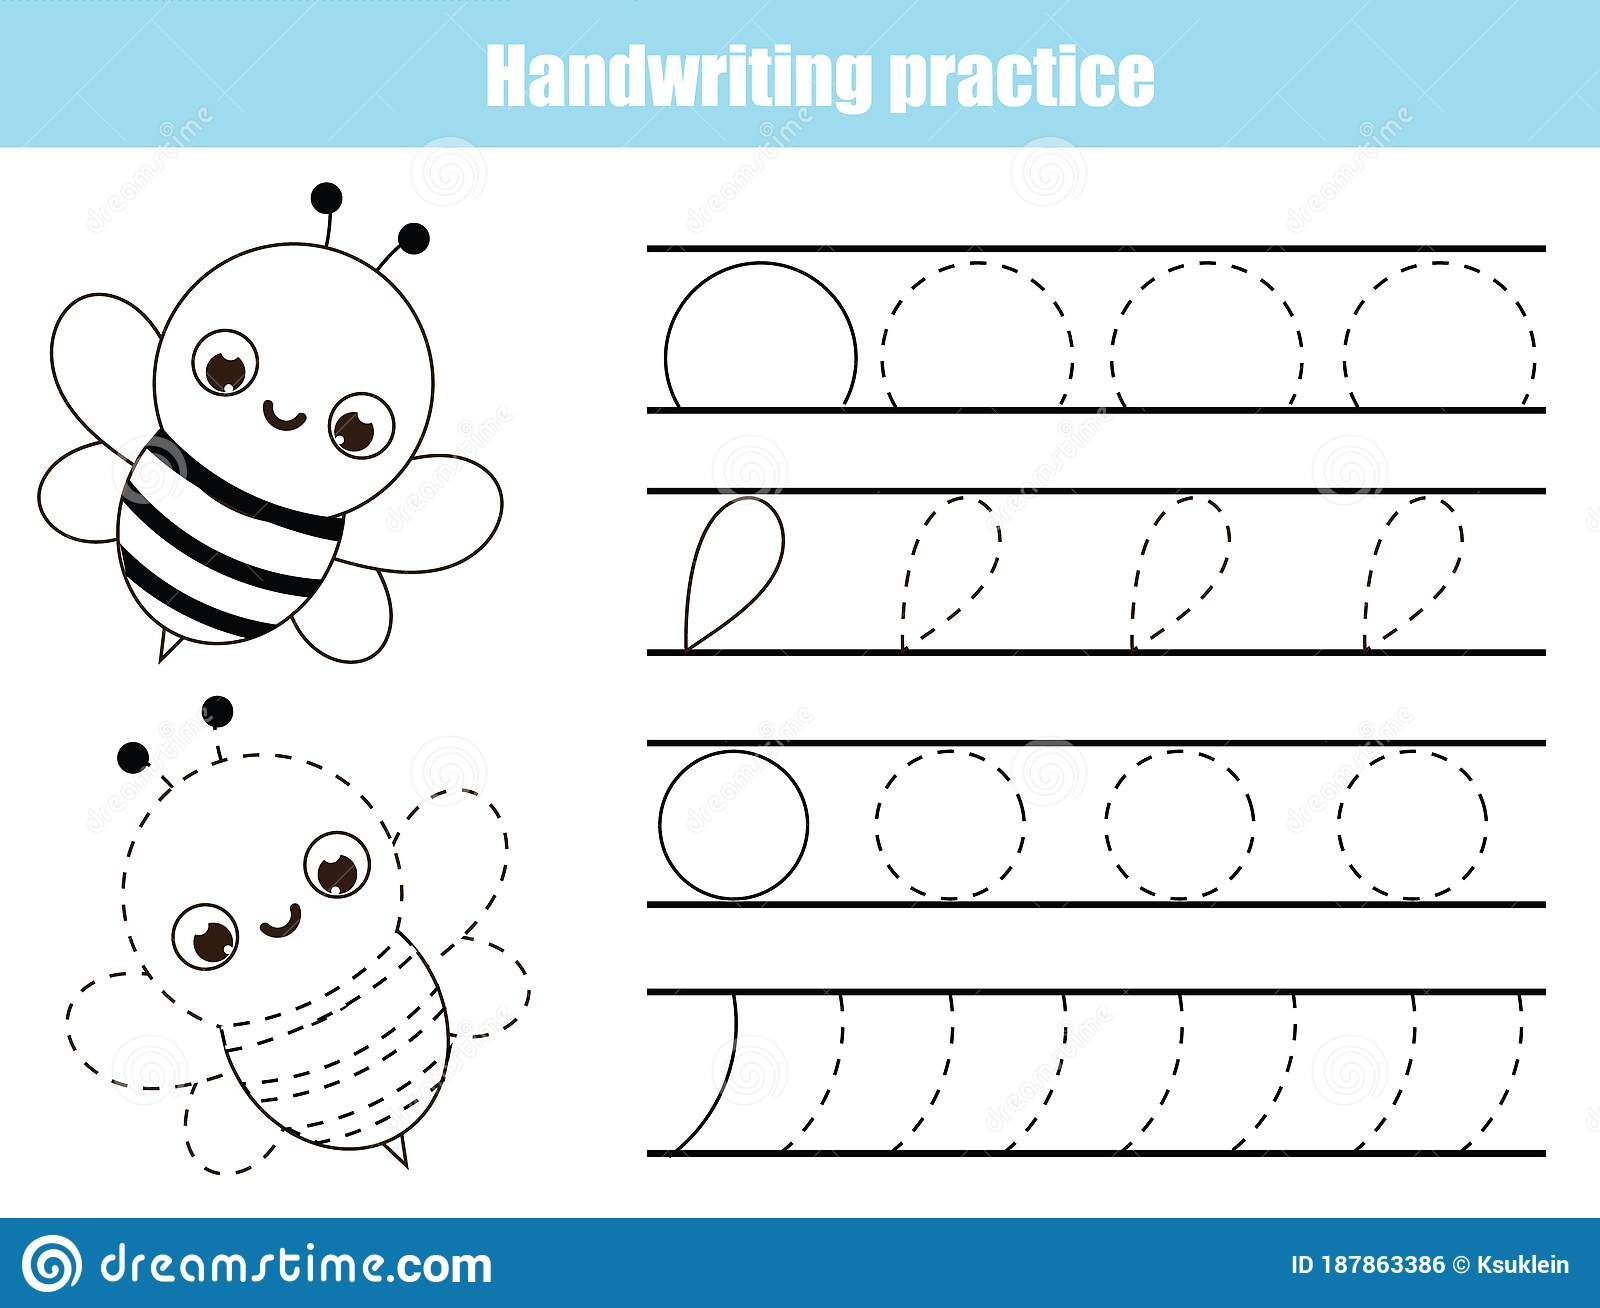 Handwriting Practice Sheet With Funny Bee Educational